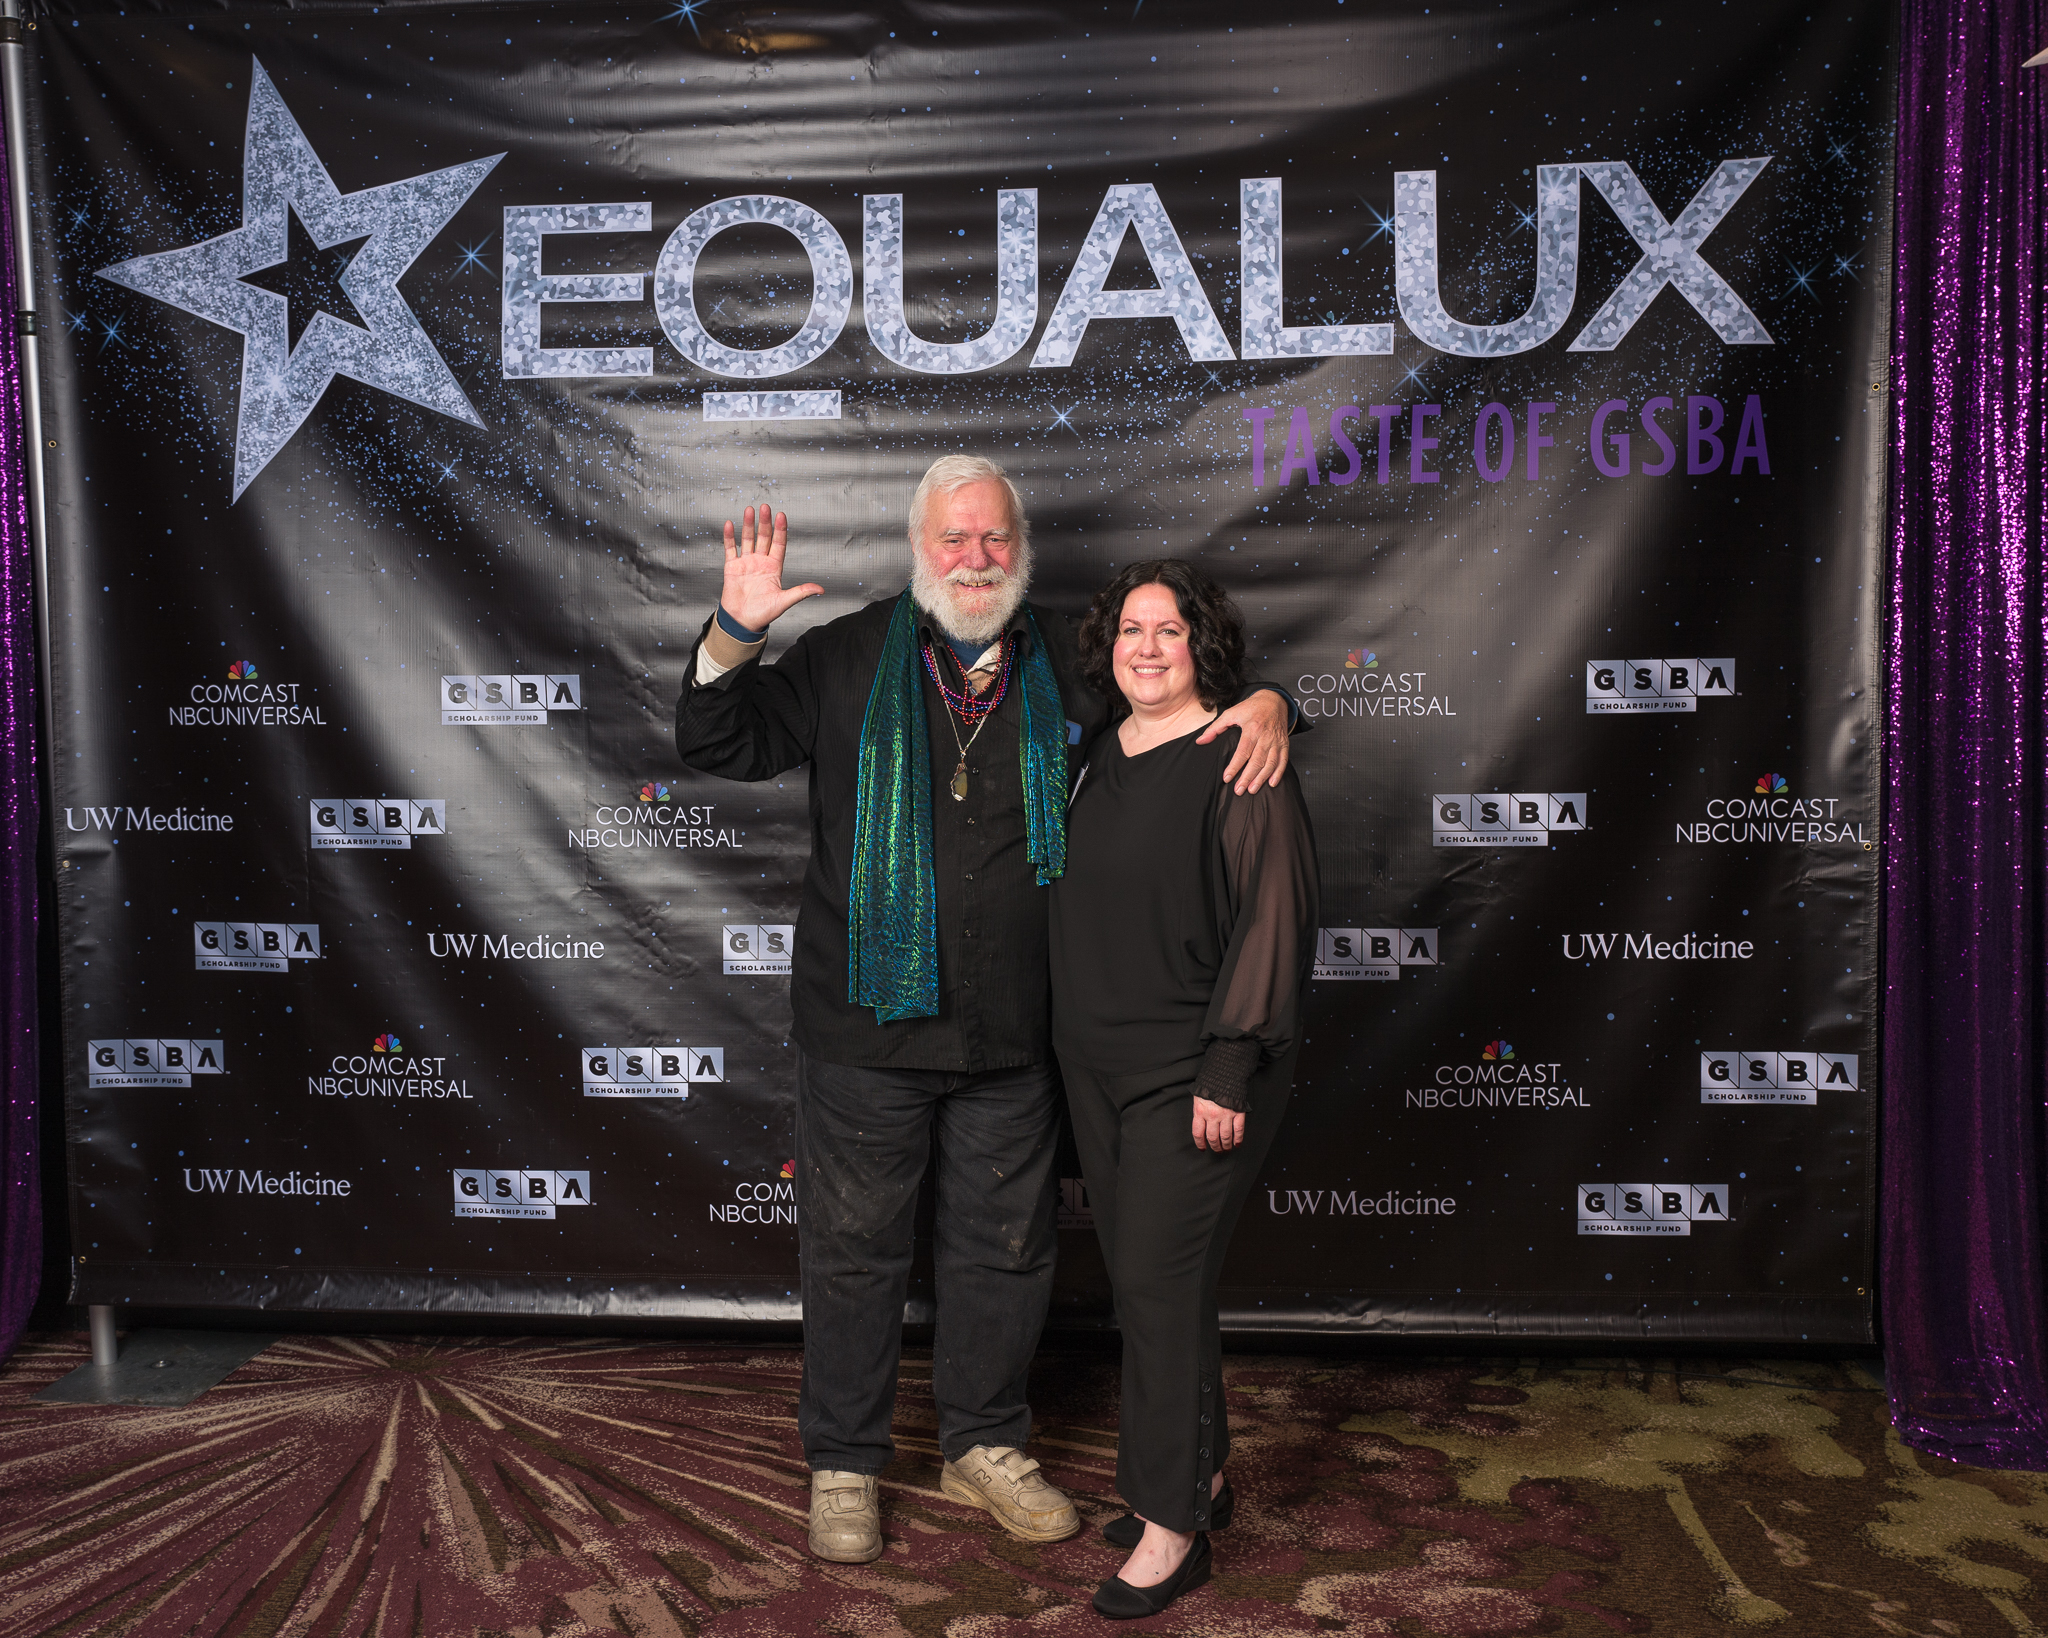 111718_GSBA EQUALUX at The Westin Seattle (Credit- Nate Gowdy)-152.jpg